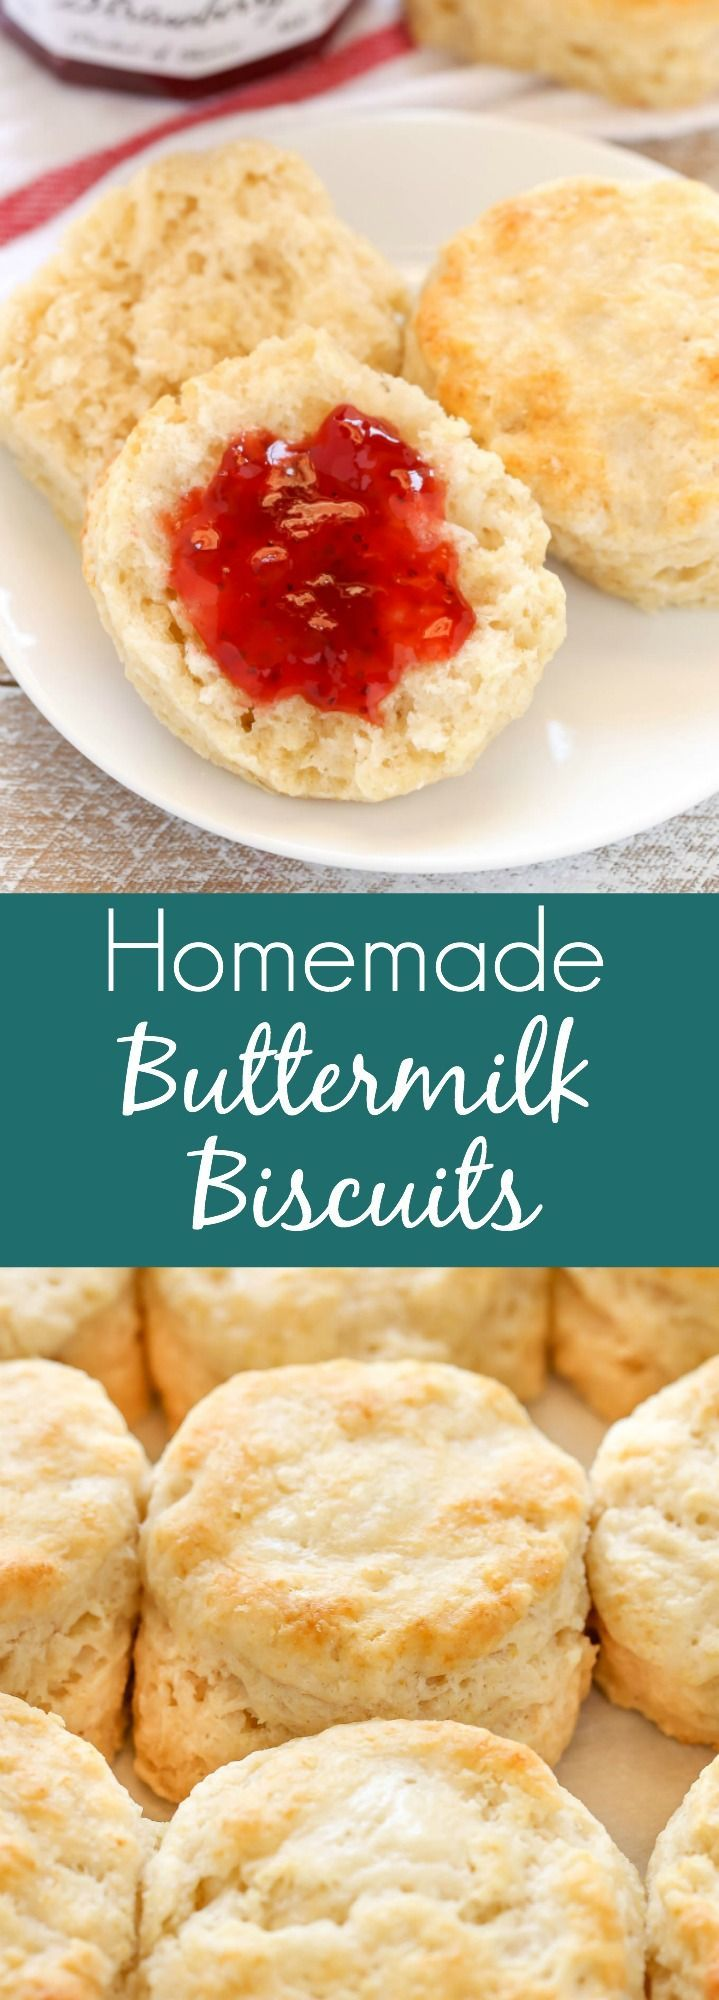 These Easy Buttermilk Biscuits Are Incredibly Soft Tall Flaky And Buttery Serve These With So Homemade Biscuits Biscuit Recipe Homemade Buttermilk Biscuits